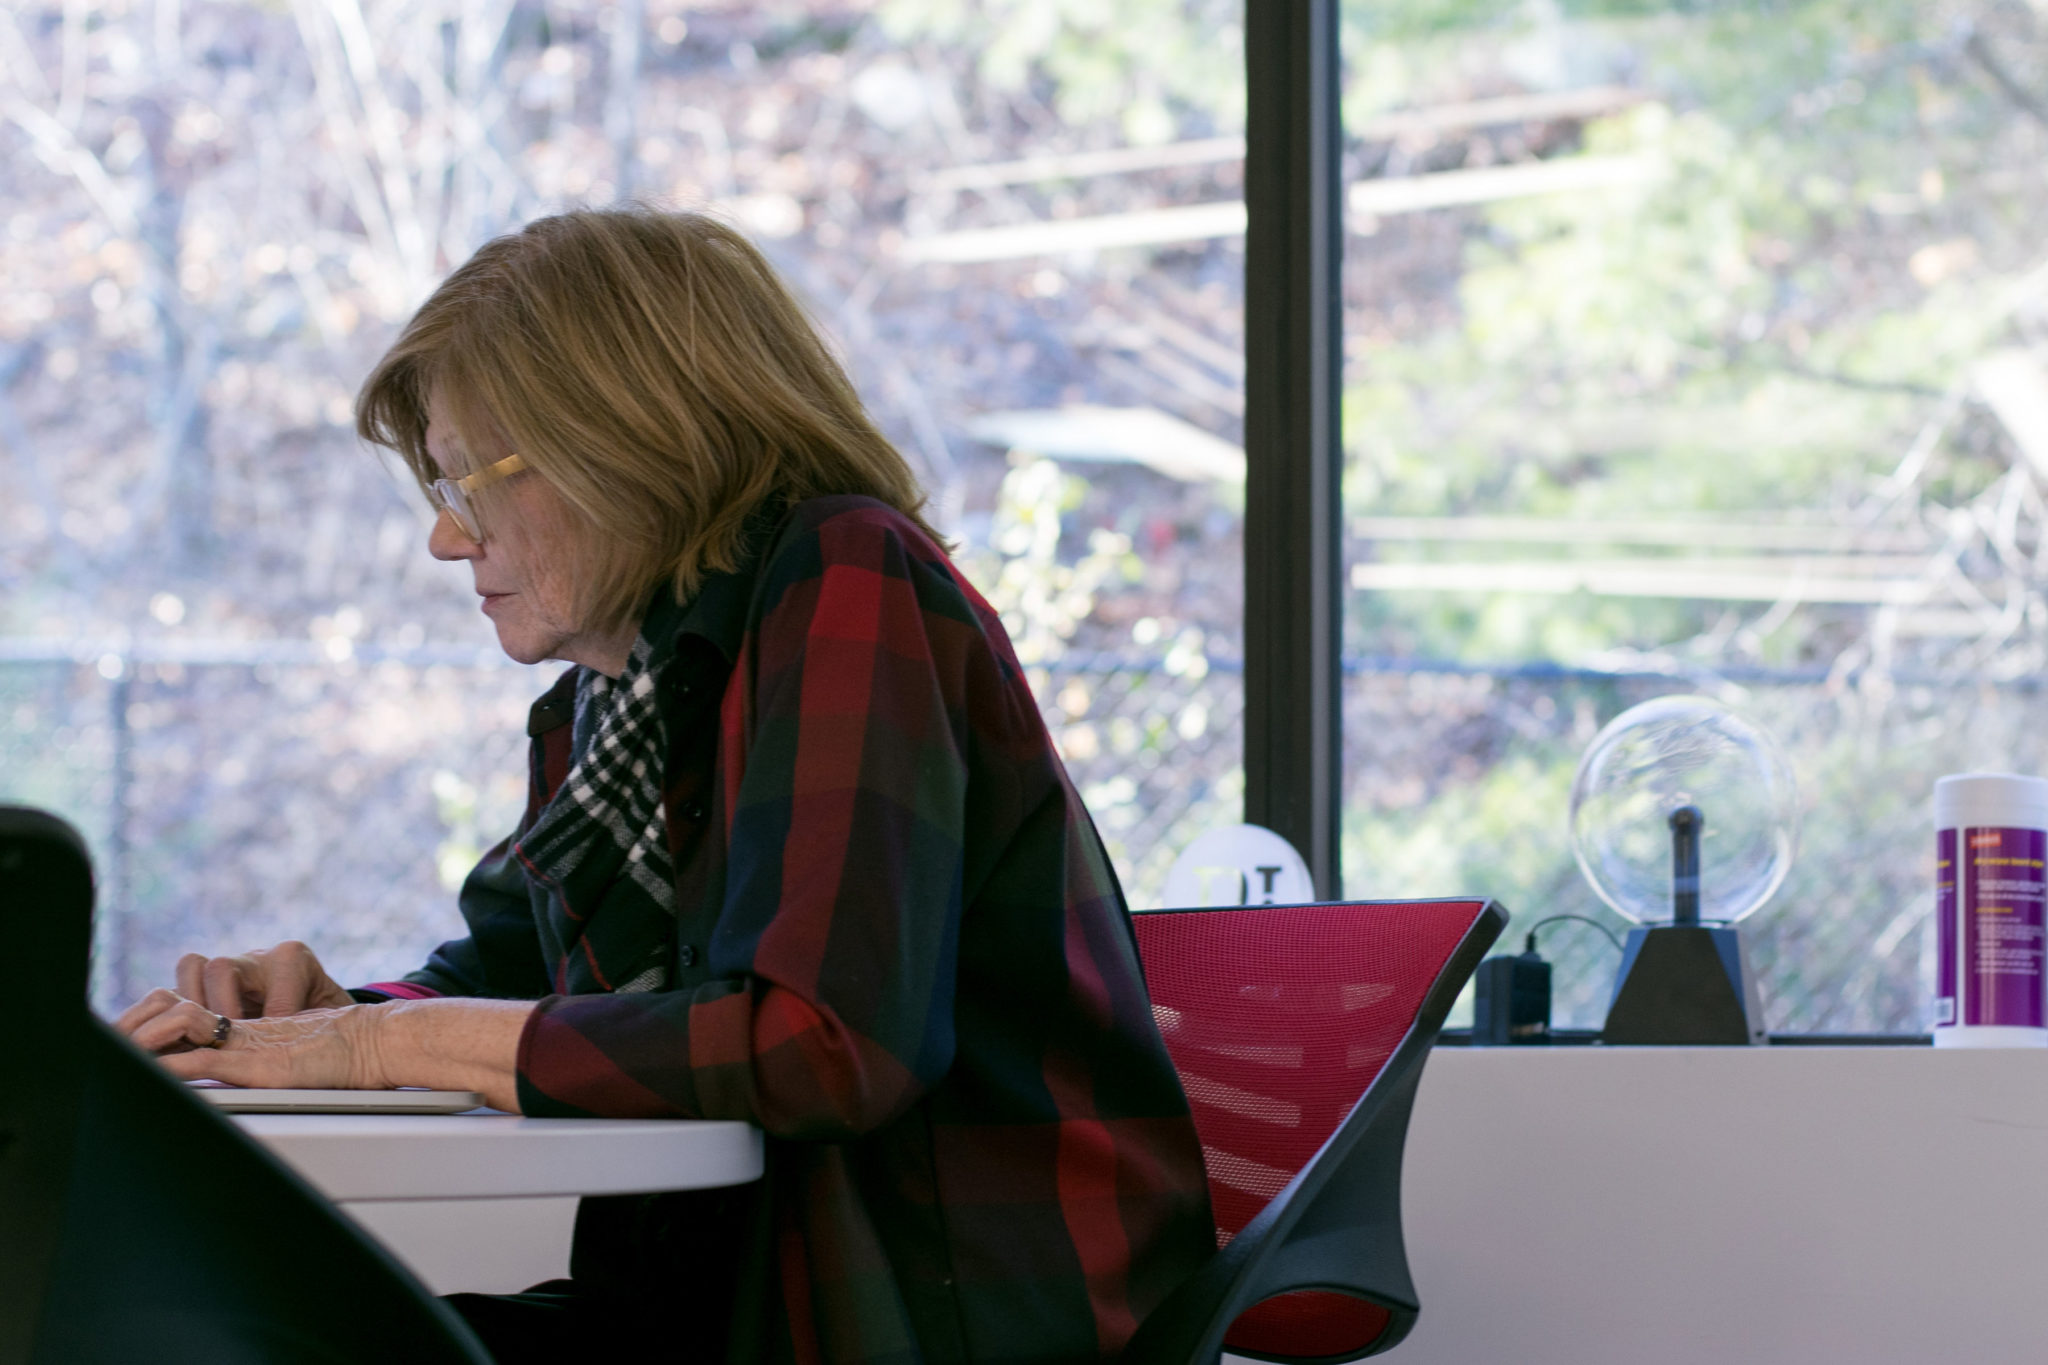 employee adhering to tips for working remotely